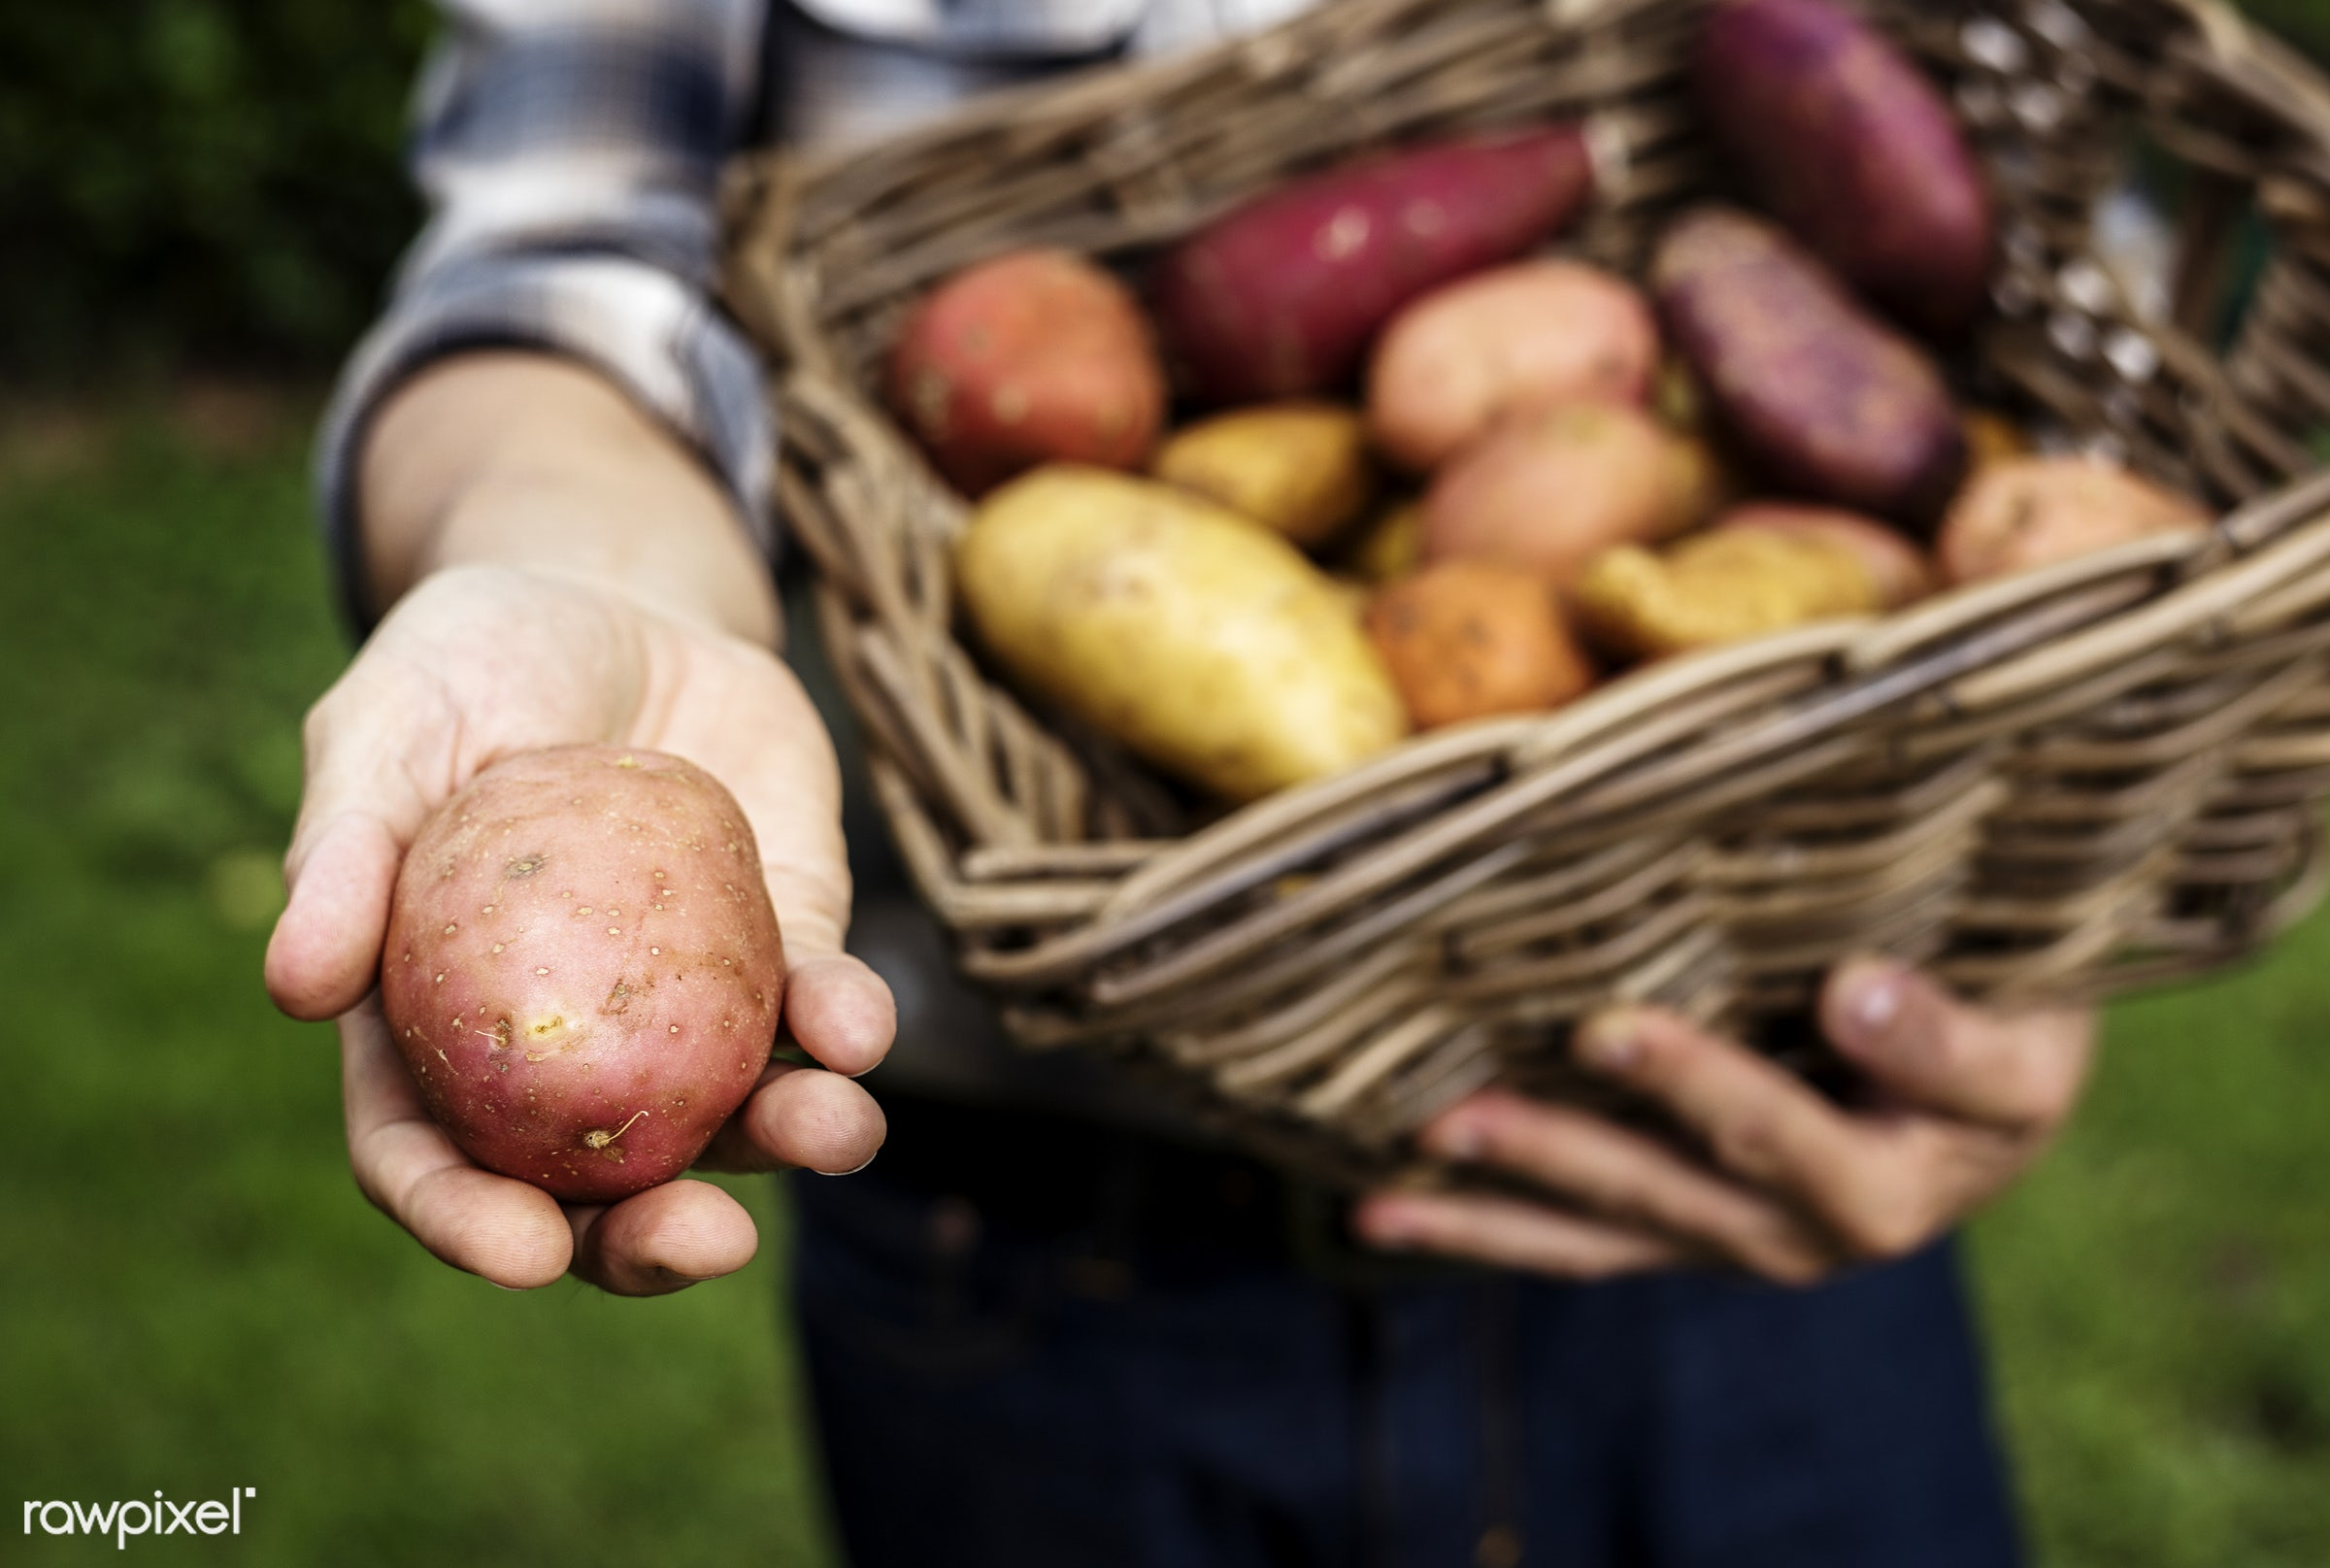 raw, holding, potatoes, farm, nature, hands, fresh, closeup, organic, basket, healthy, harvest, vegetable, produce